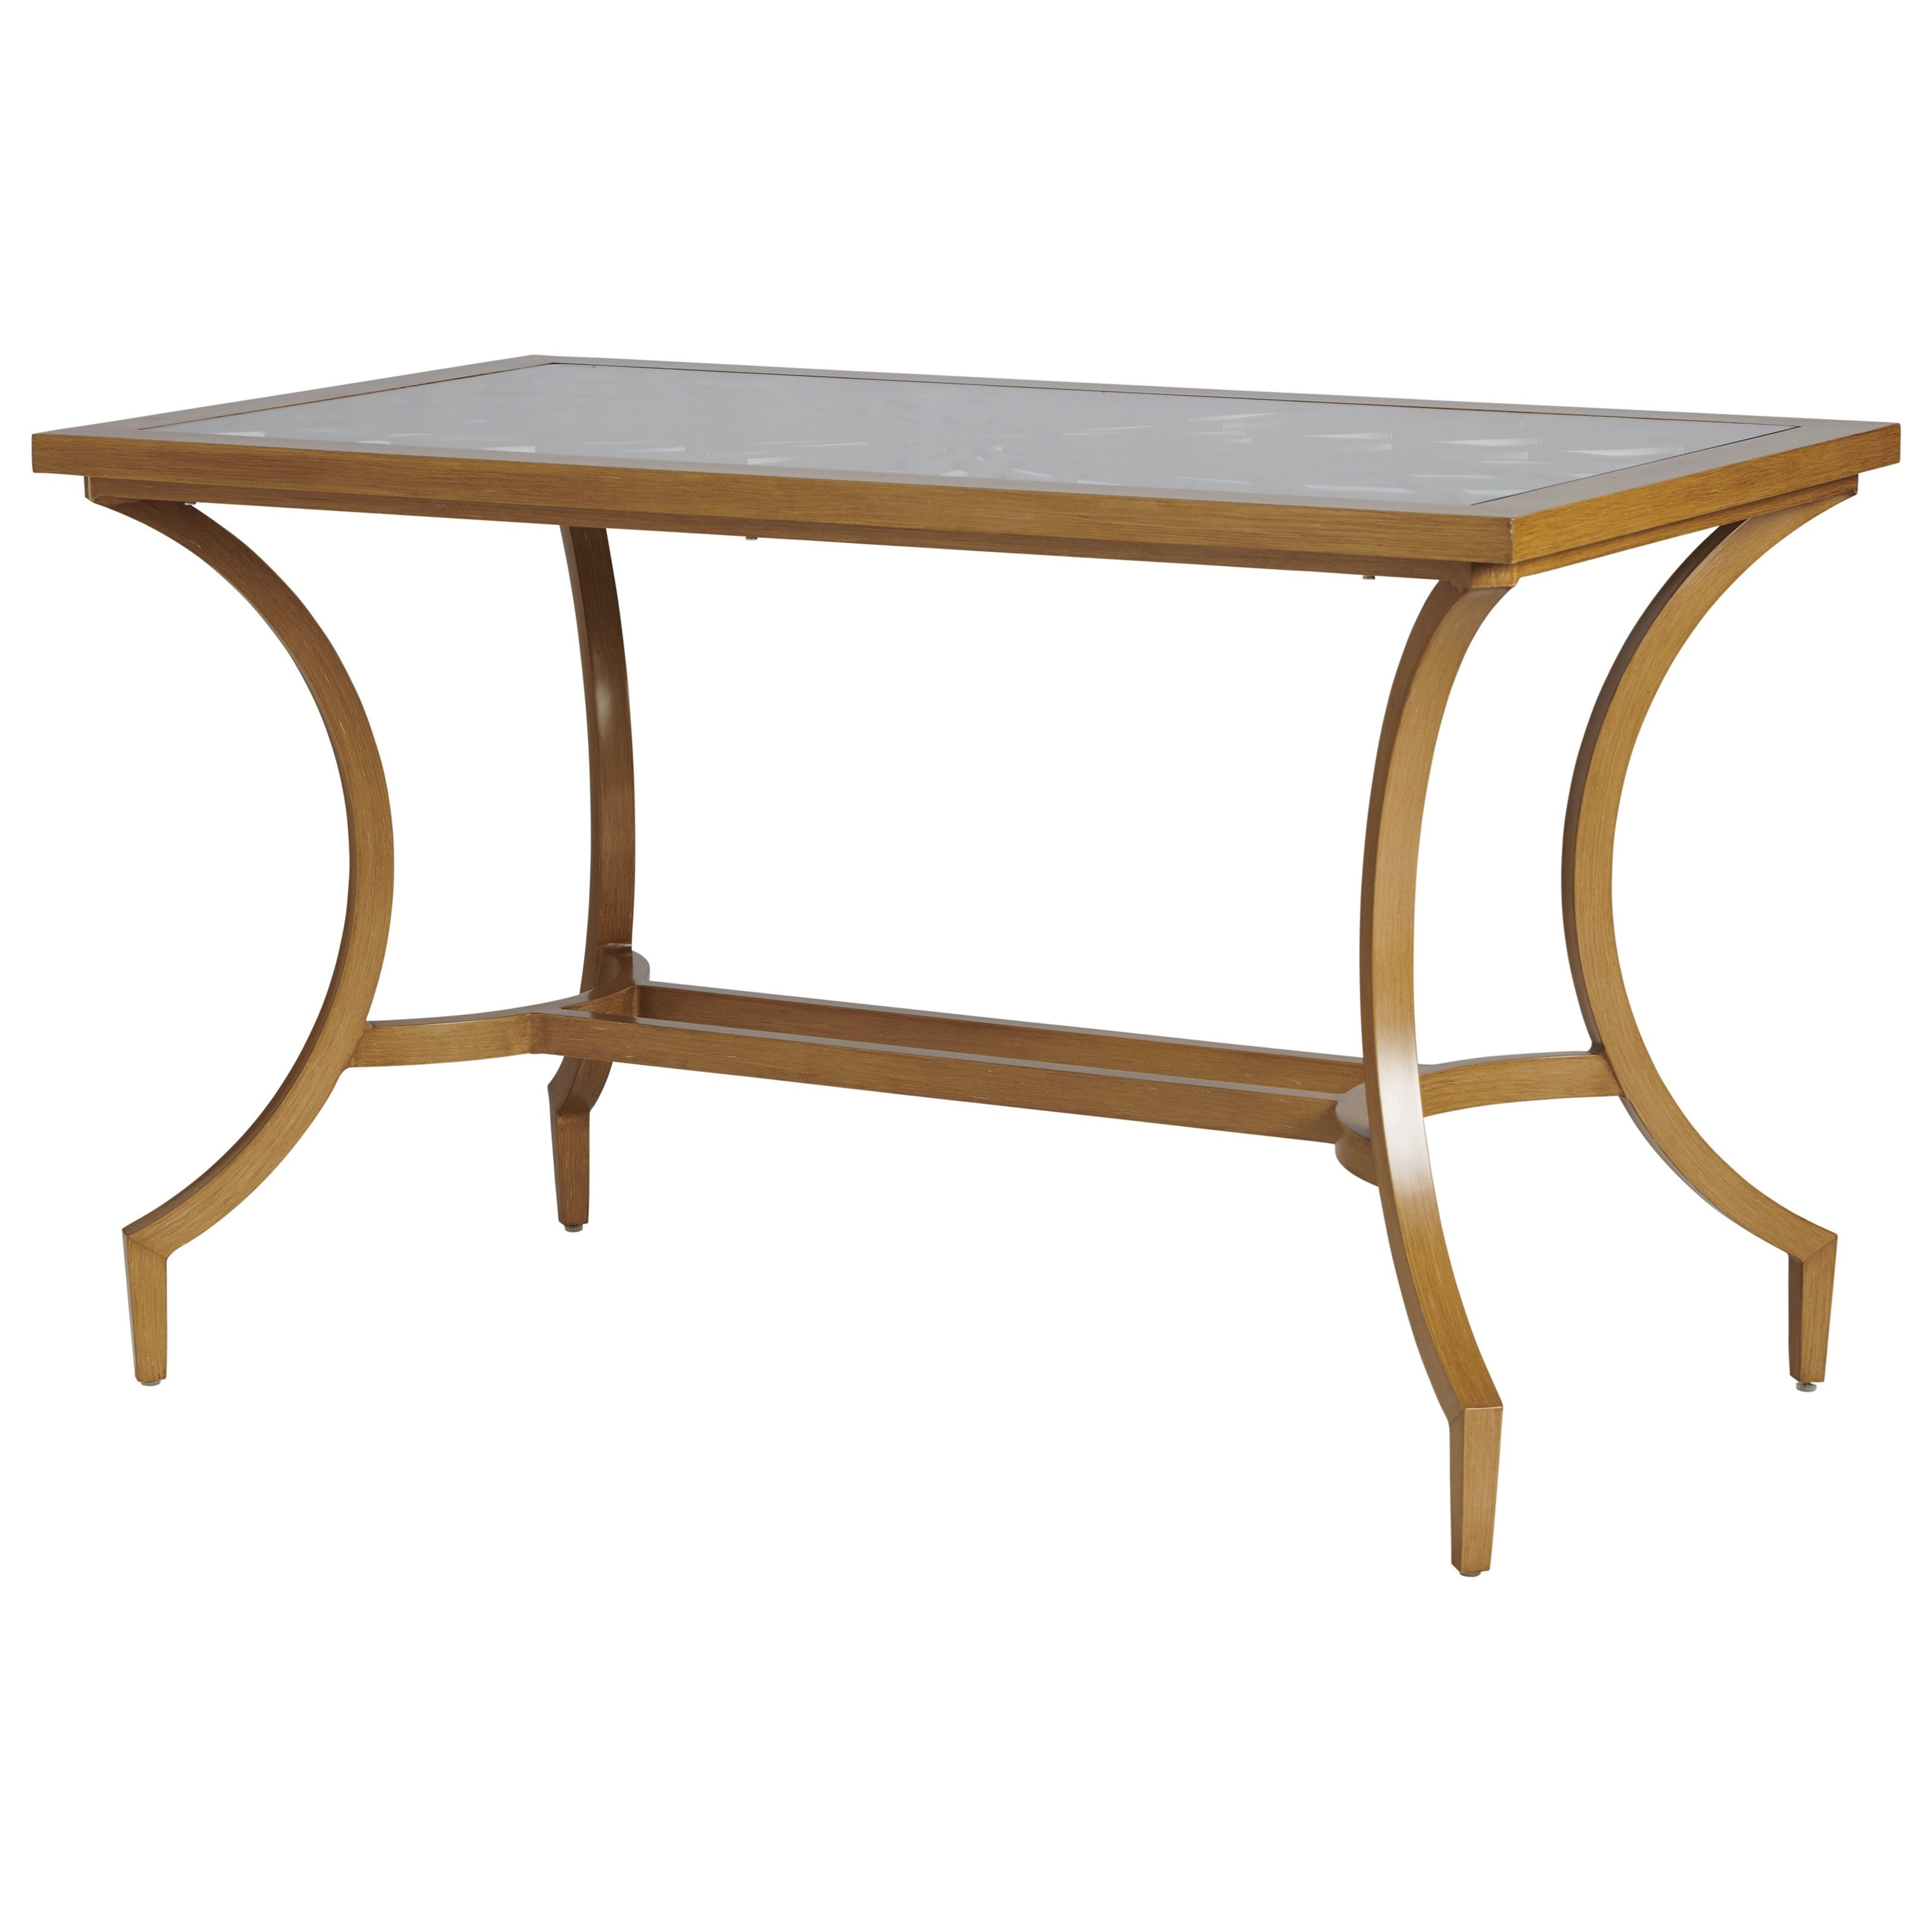 Los Altos Valley View Bistro Table by Tommy Bahama Outdoor Living at Baer's Furniture